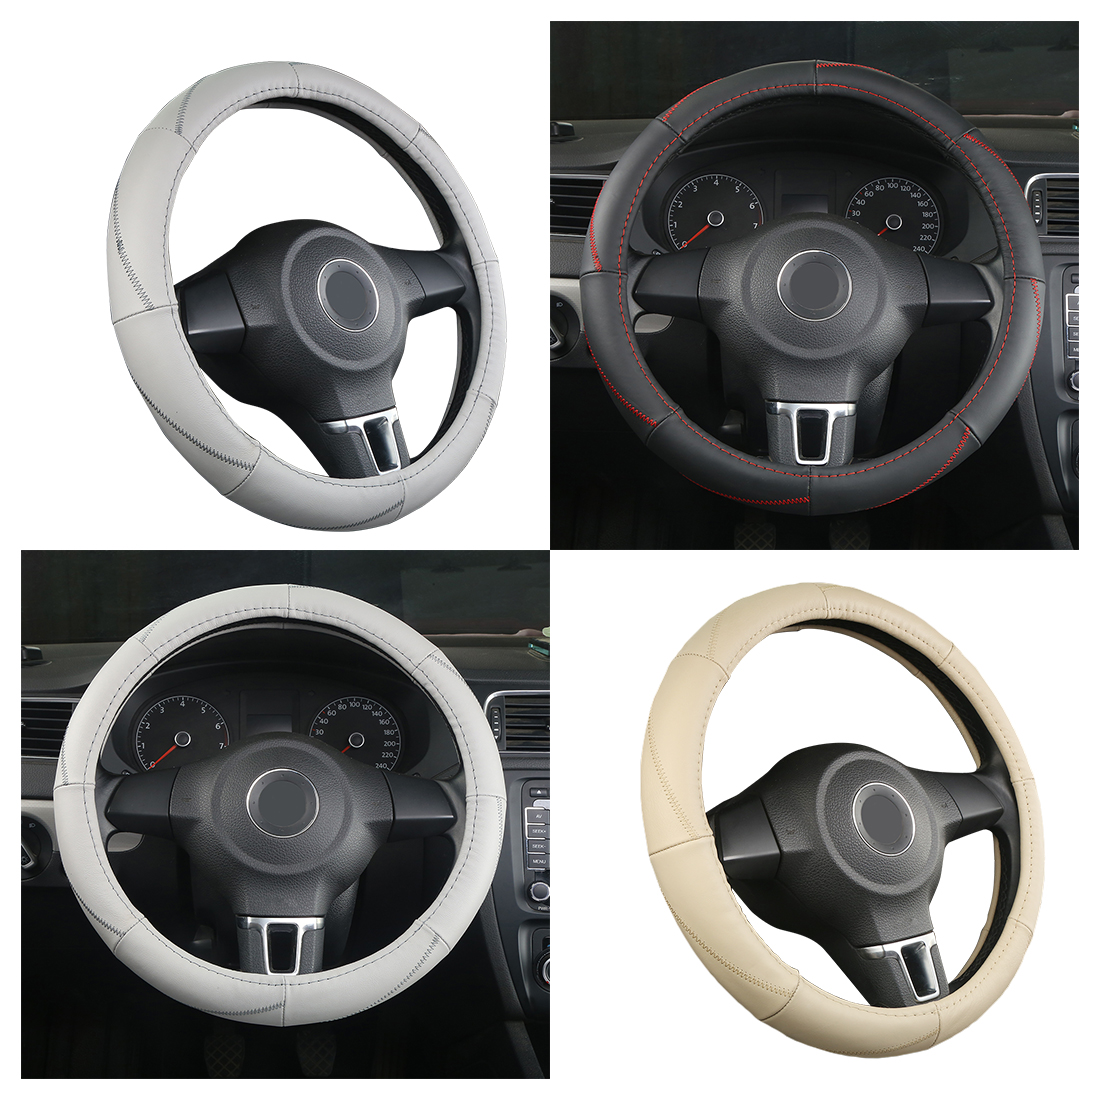 Dewtreetali Auto Car Steering Wheel Cover 38cm Genuine Leather Elegant Car Steering-wheel Decoration Car-styling Black Beige